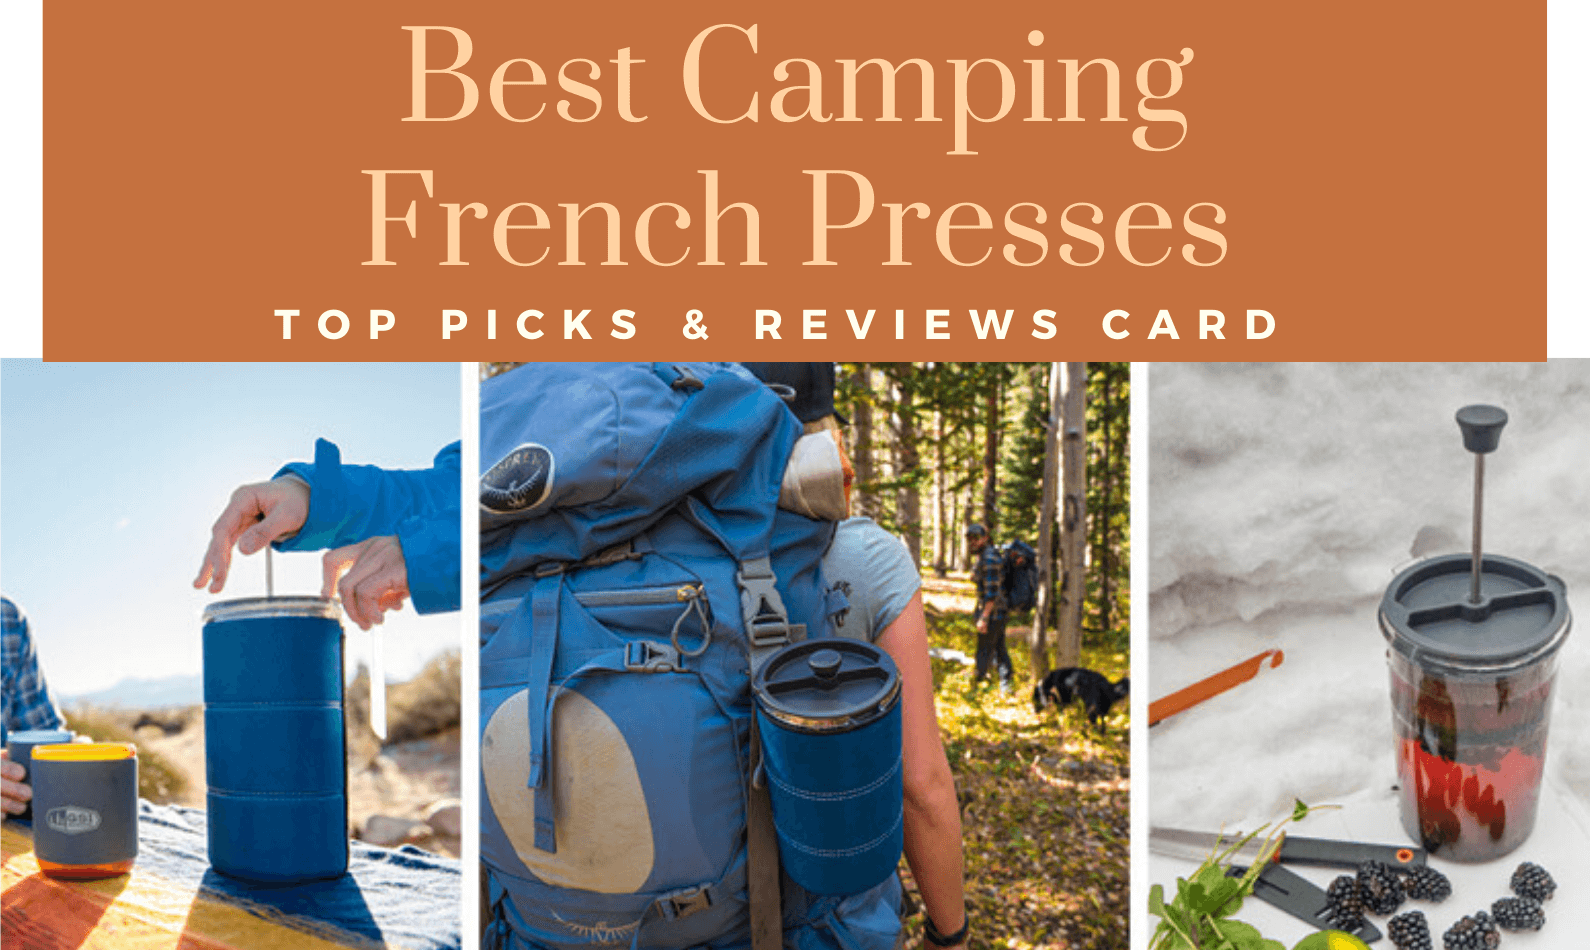 Best Camping French Presses